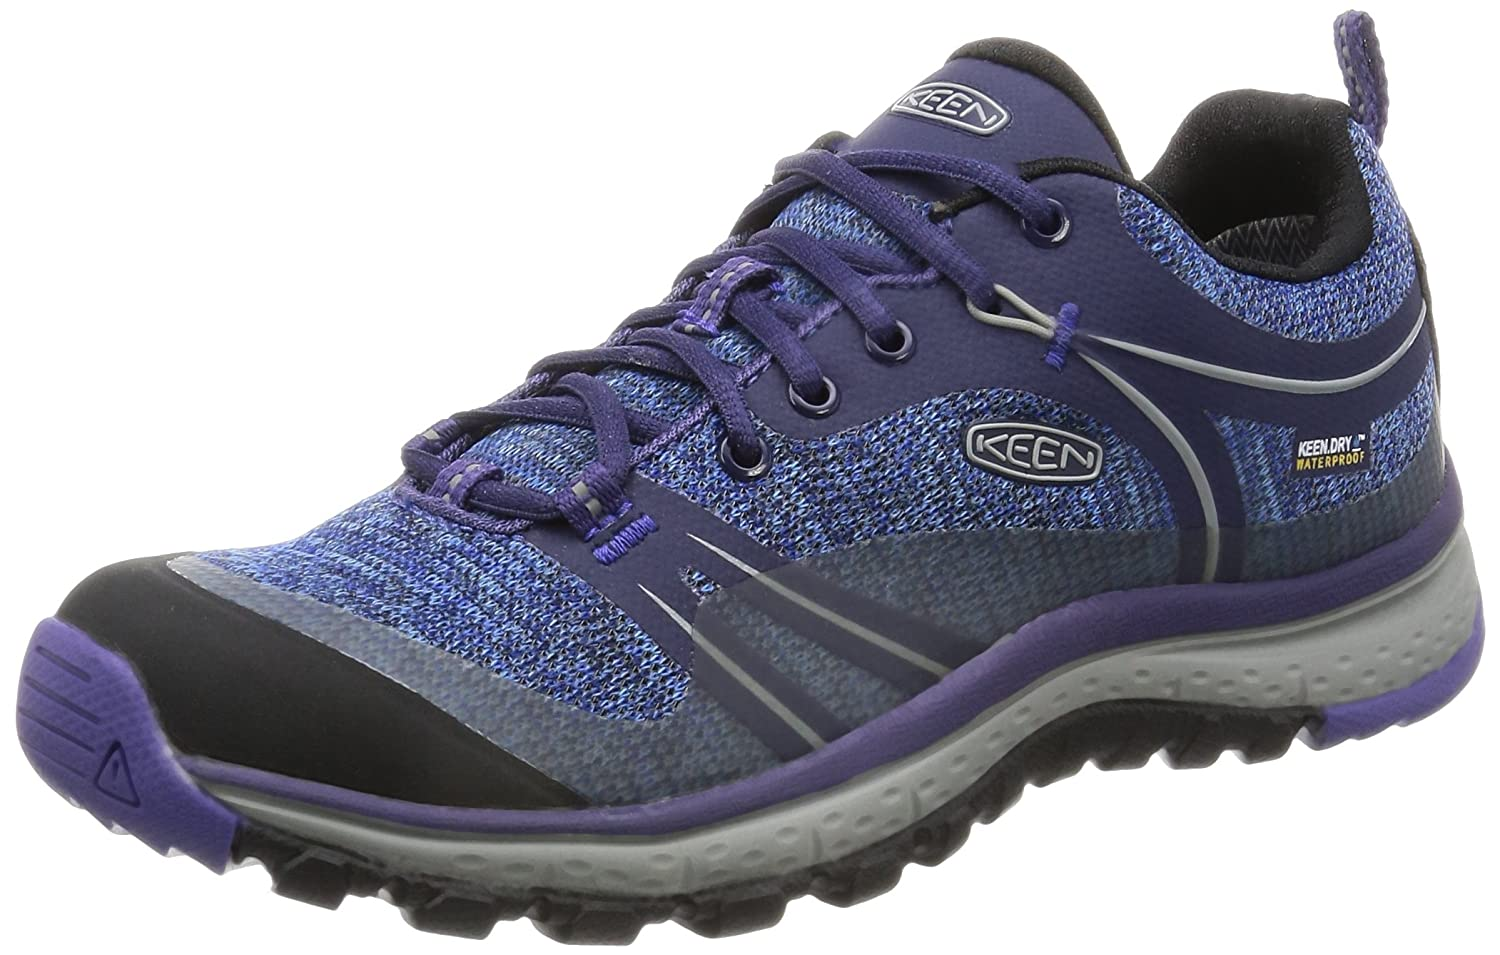 KEEN Women's Terradora Waterproof Hiking Shoe B01H8H85RC 6.5 B(M) US|Astral Aura/Liberty